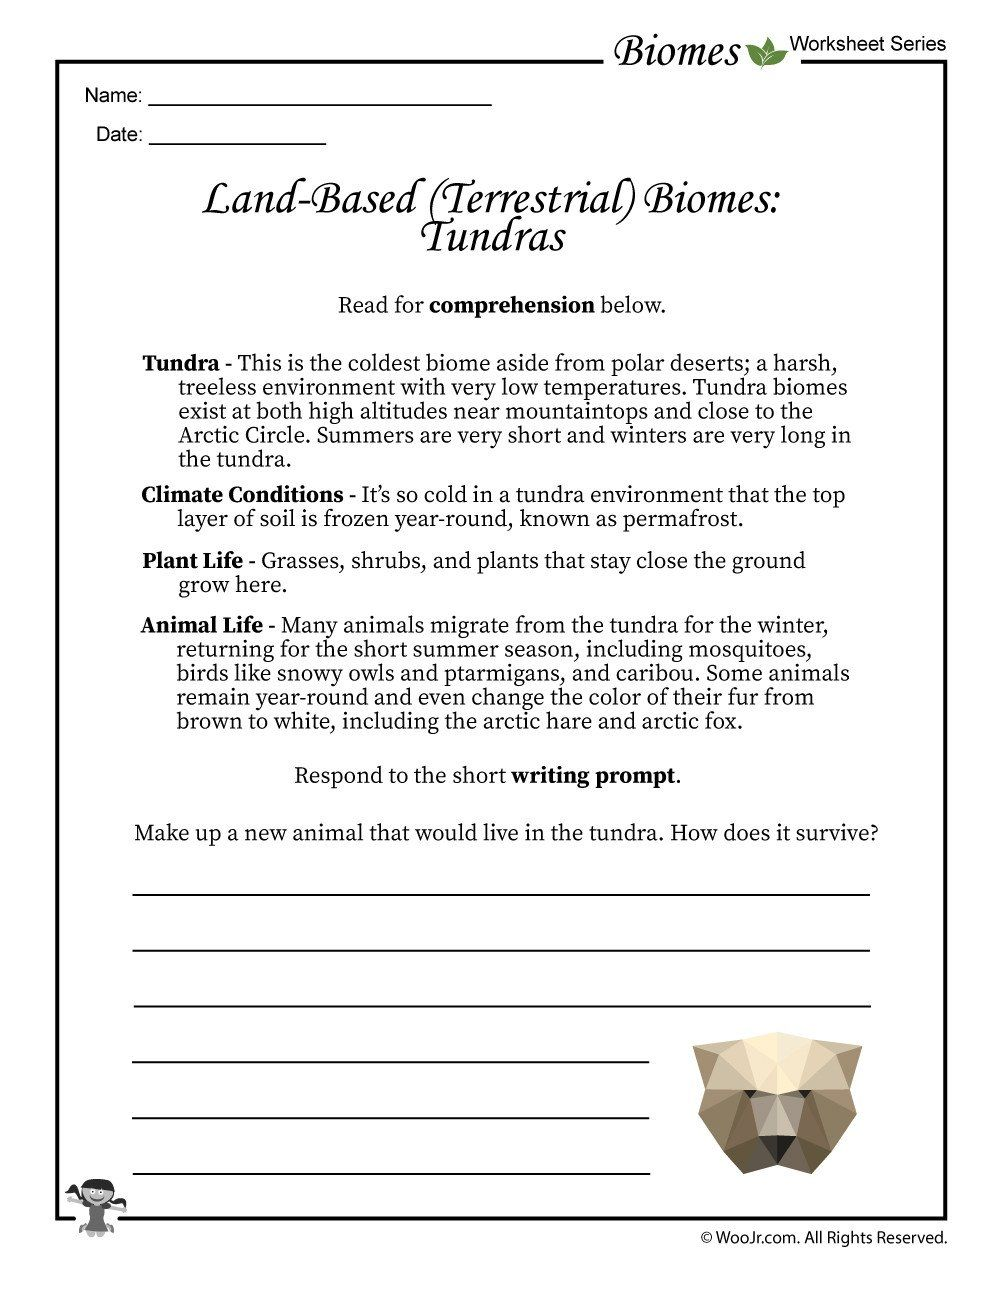 medium resolution of 4 4 Biomes Worksheet Answers Biomes Worksheet Doc   Biomes